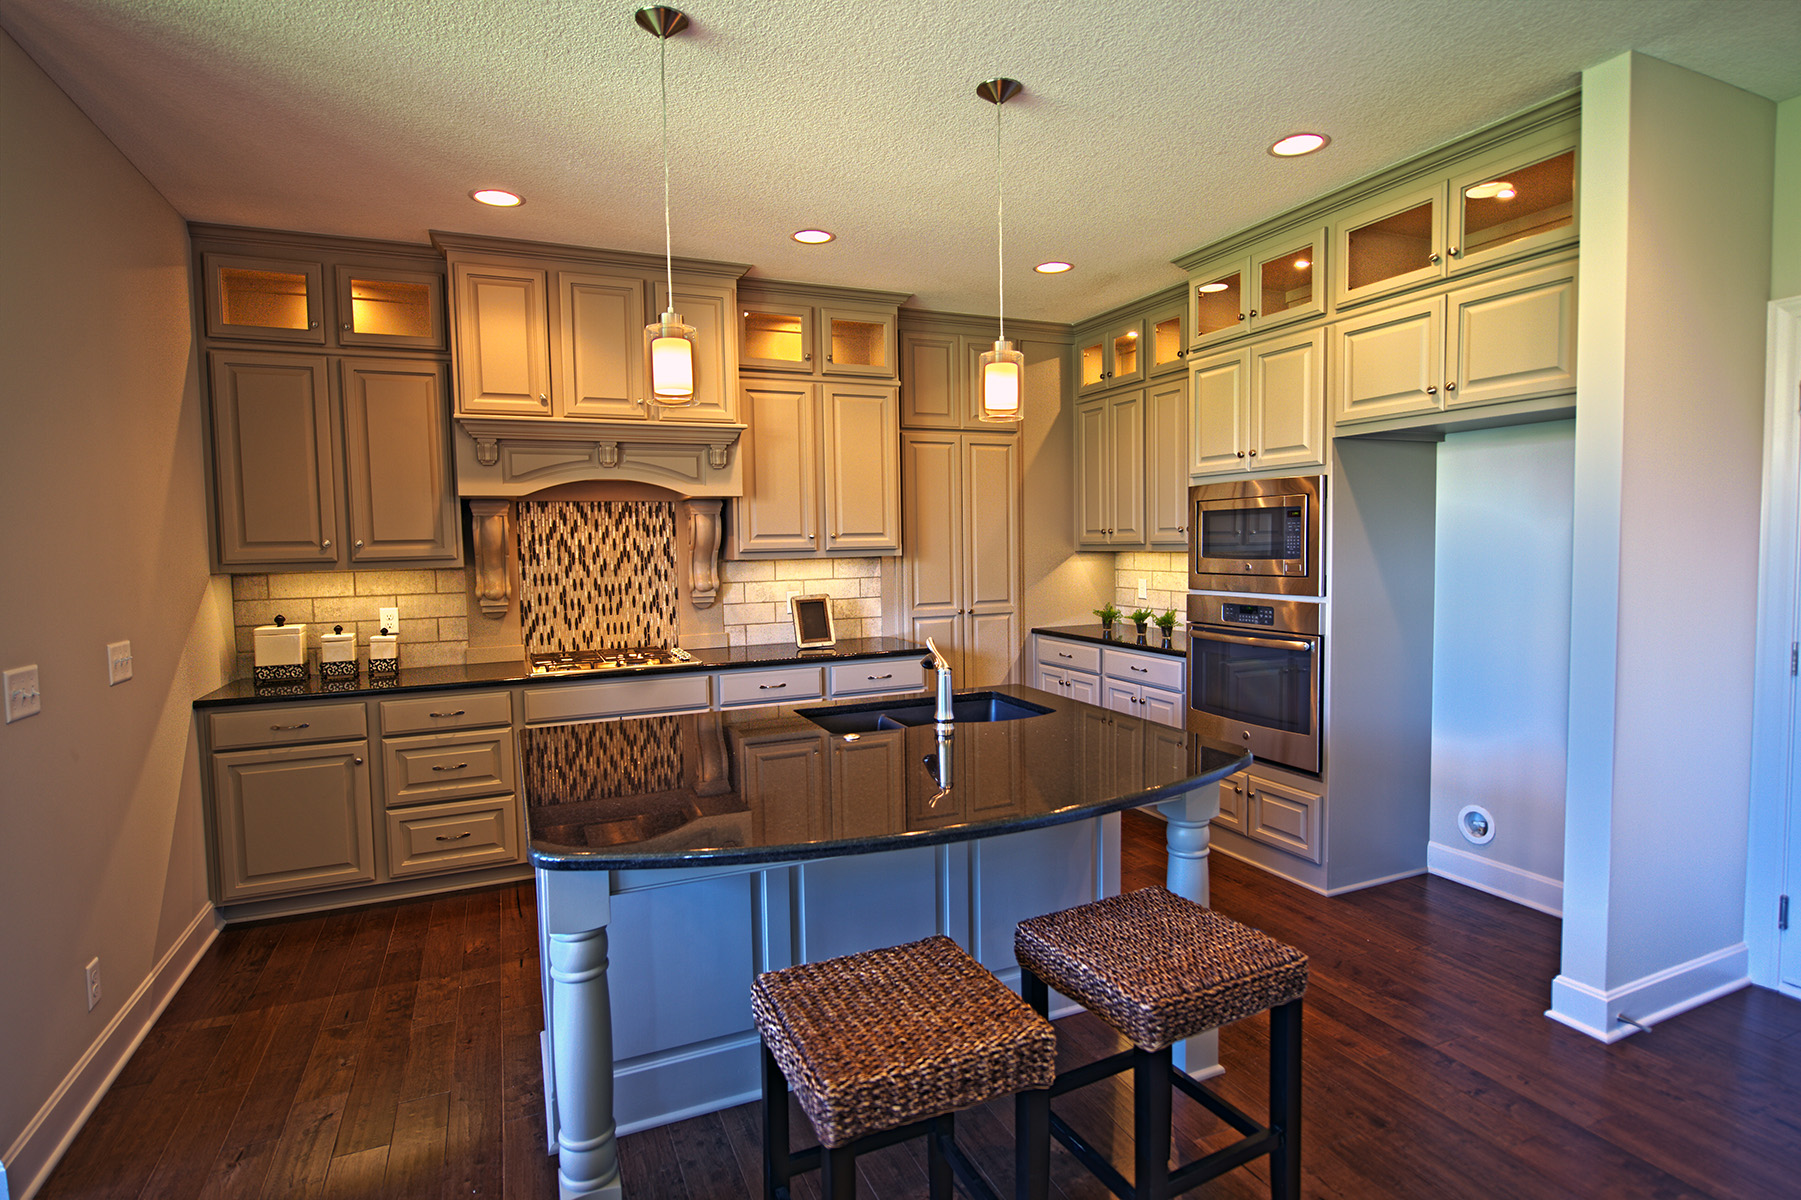 Reilly Home Builders, Canaan Stone Works, kitchen island, granite counter tops, natural light, nuteral cabinets, custom granite countertops